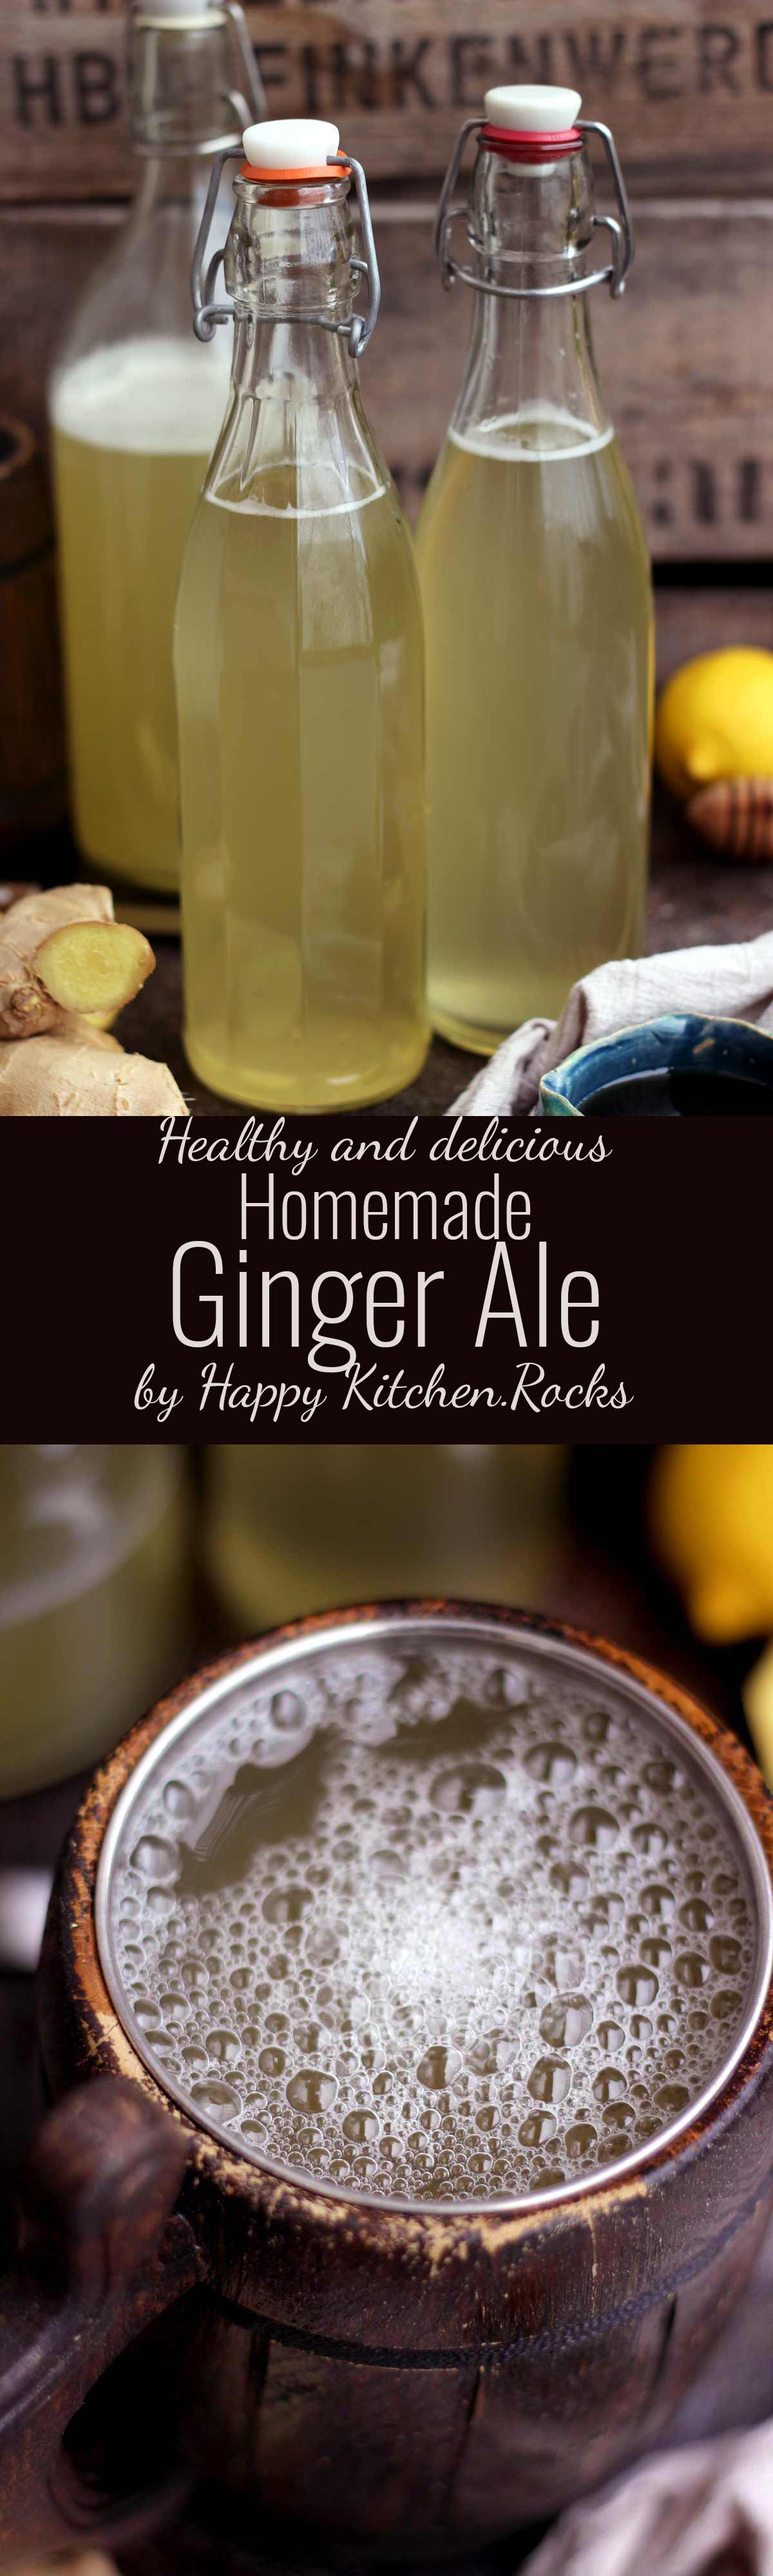 Easy Homemade Ginger Beer - Super Long Collage with Text Overlay